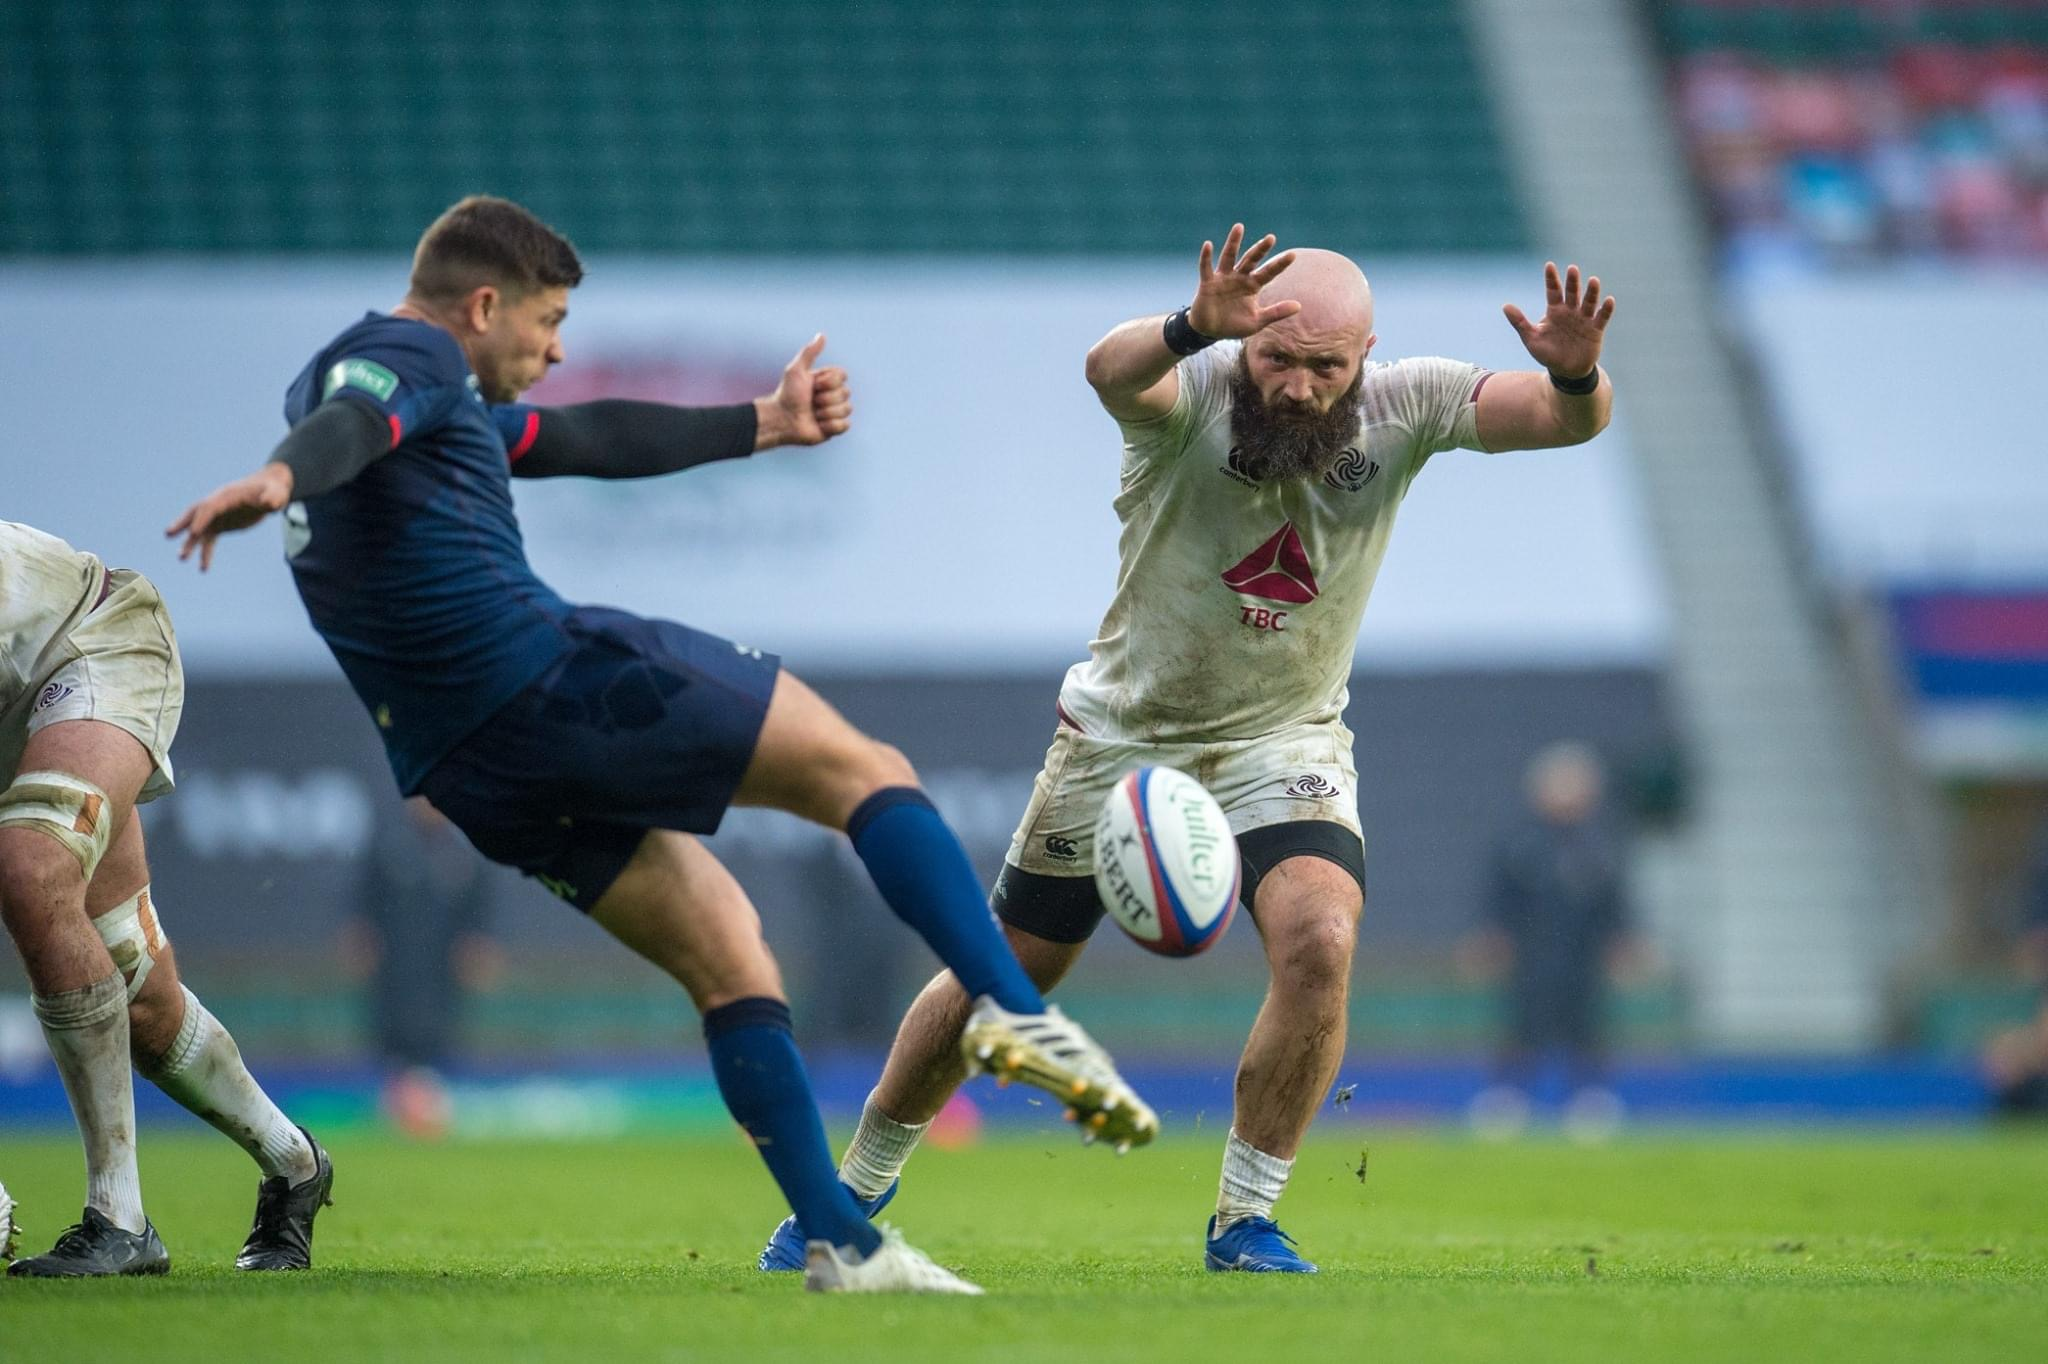 Georgia Rugby player Shalva Mamukashvili charges down England's Ben Youngs